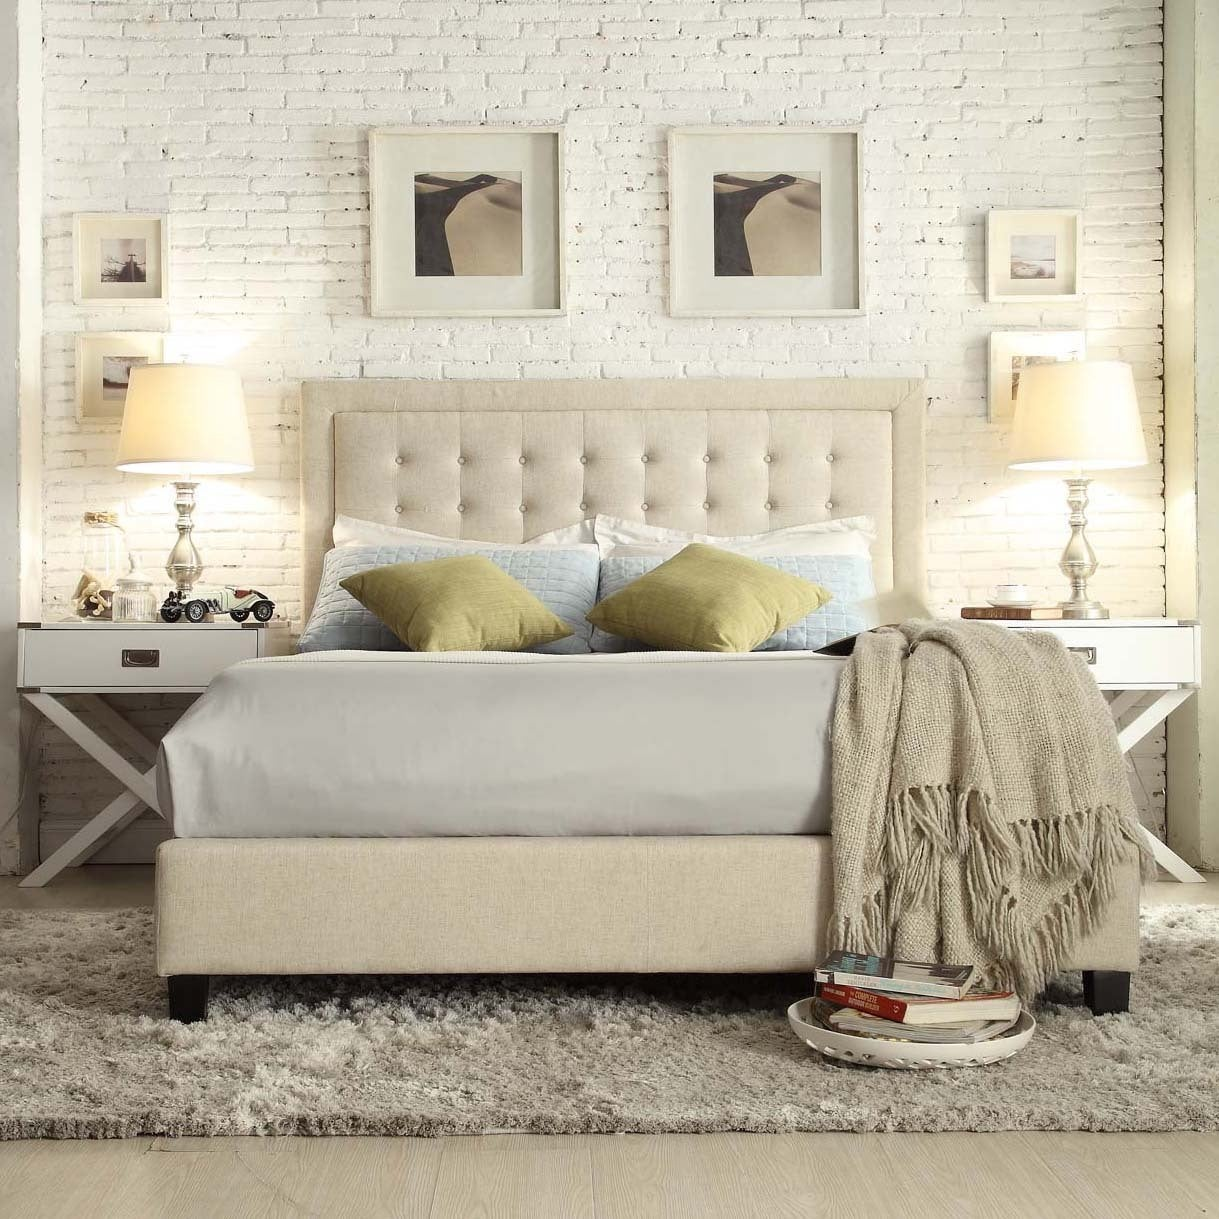 Bellevista Square Button-tufted Upholstered Queen Bed by iNSPIRE Q Bold -  Free Shipping Today - Overstock.com - 16577707